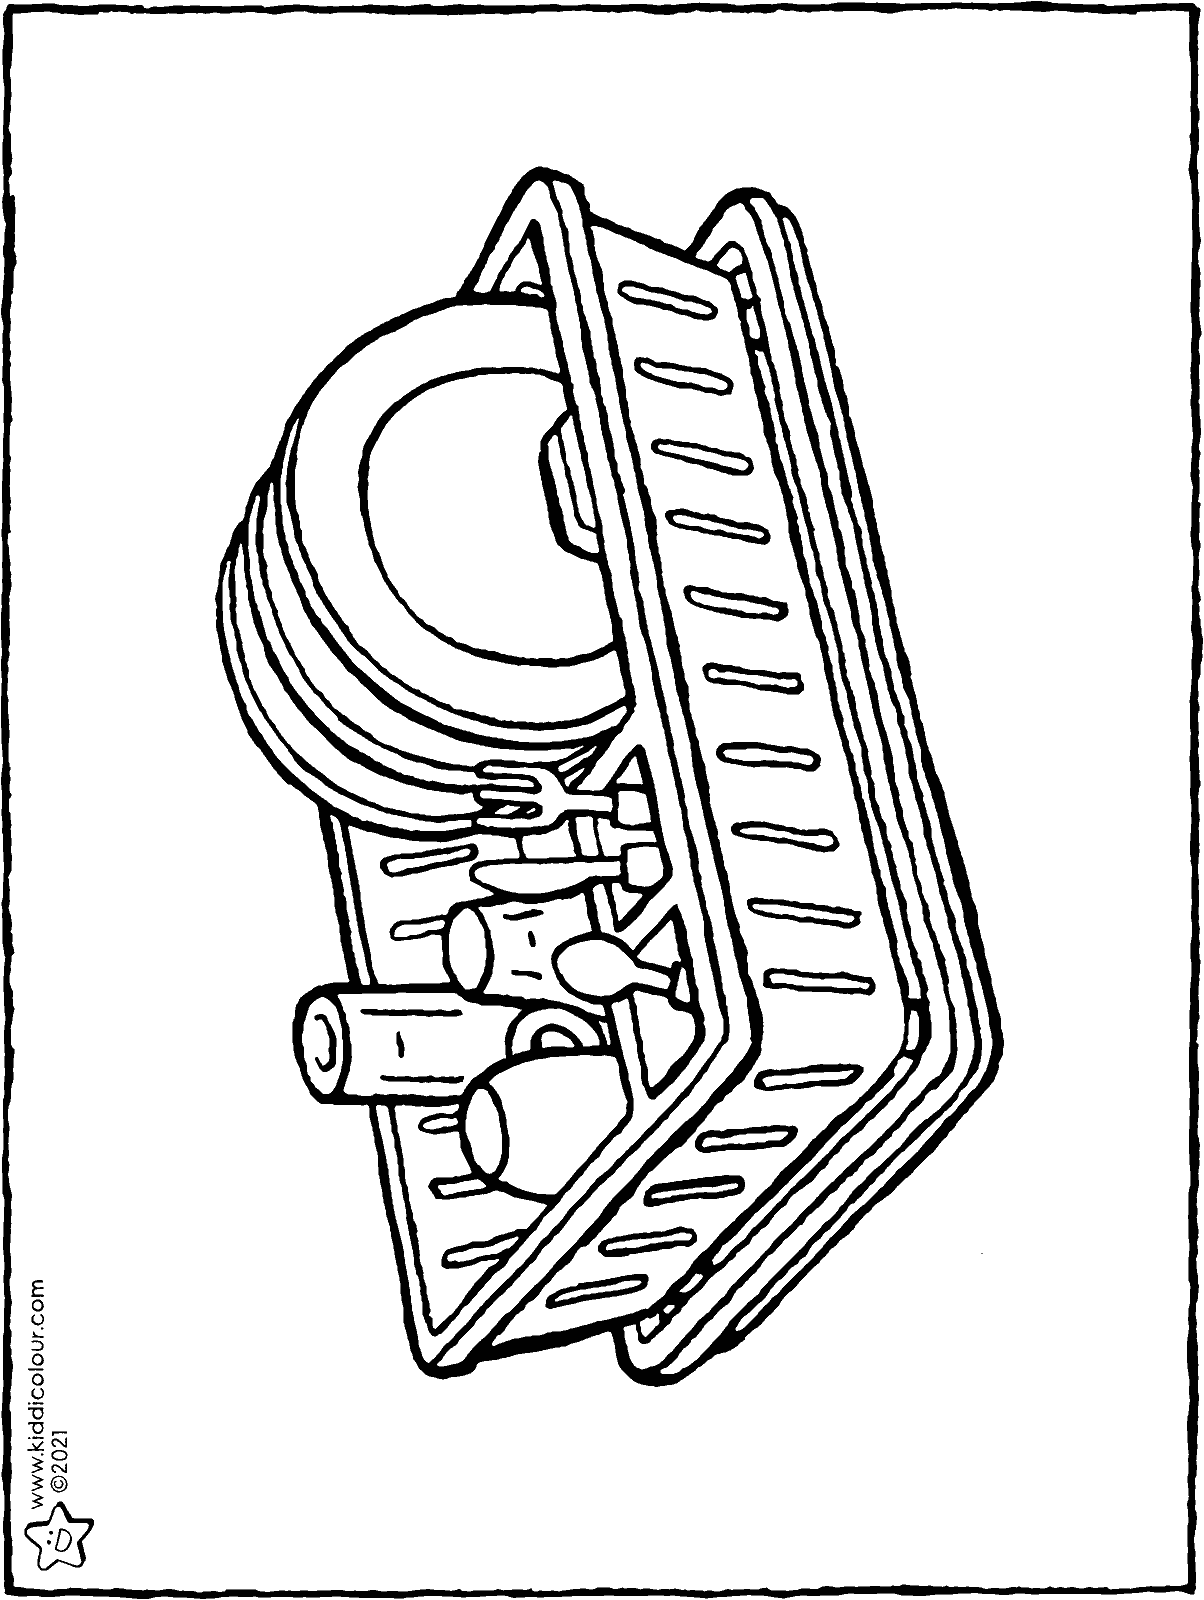 dish rack colouring page drawing picture 01H